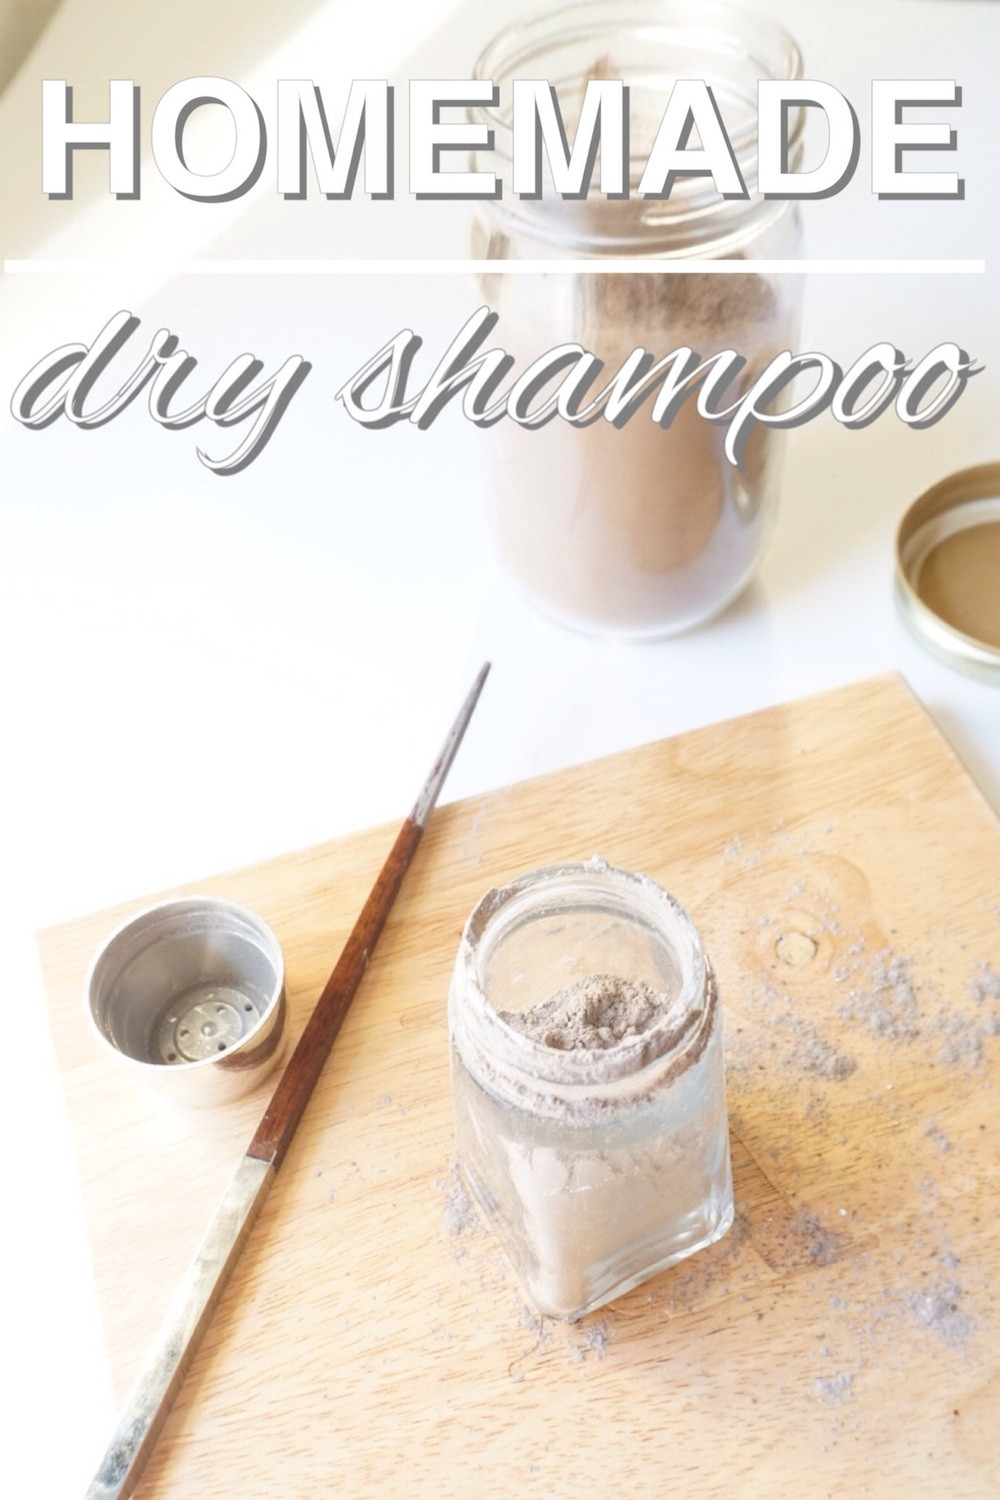 Zero Waste Diy  Homemade Dry Shampoo Going Zero Waste